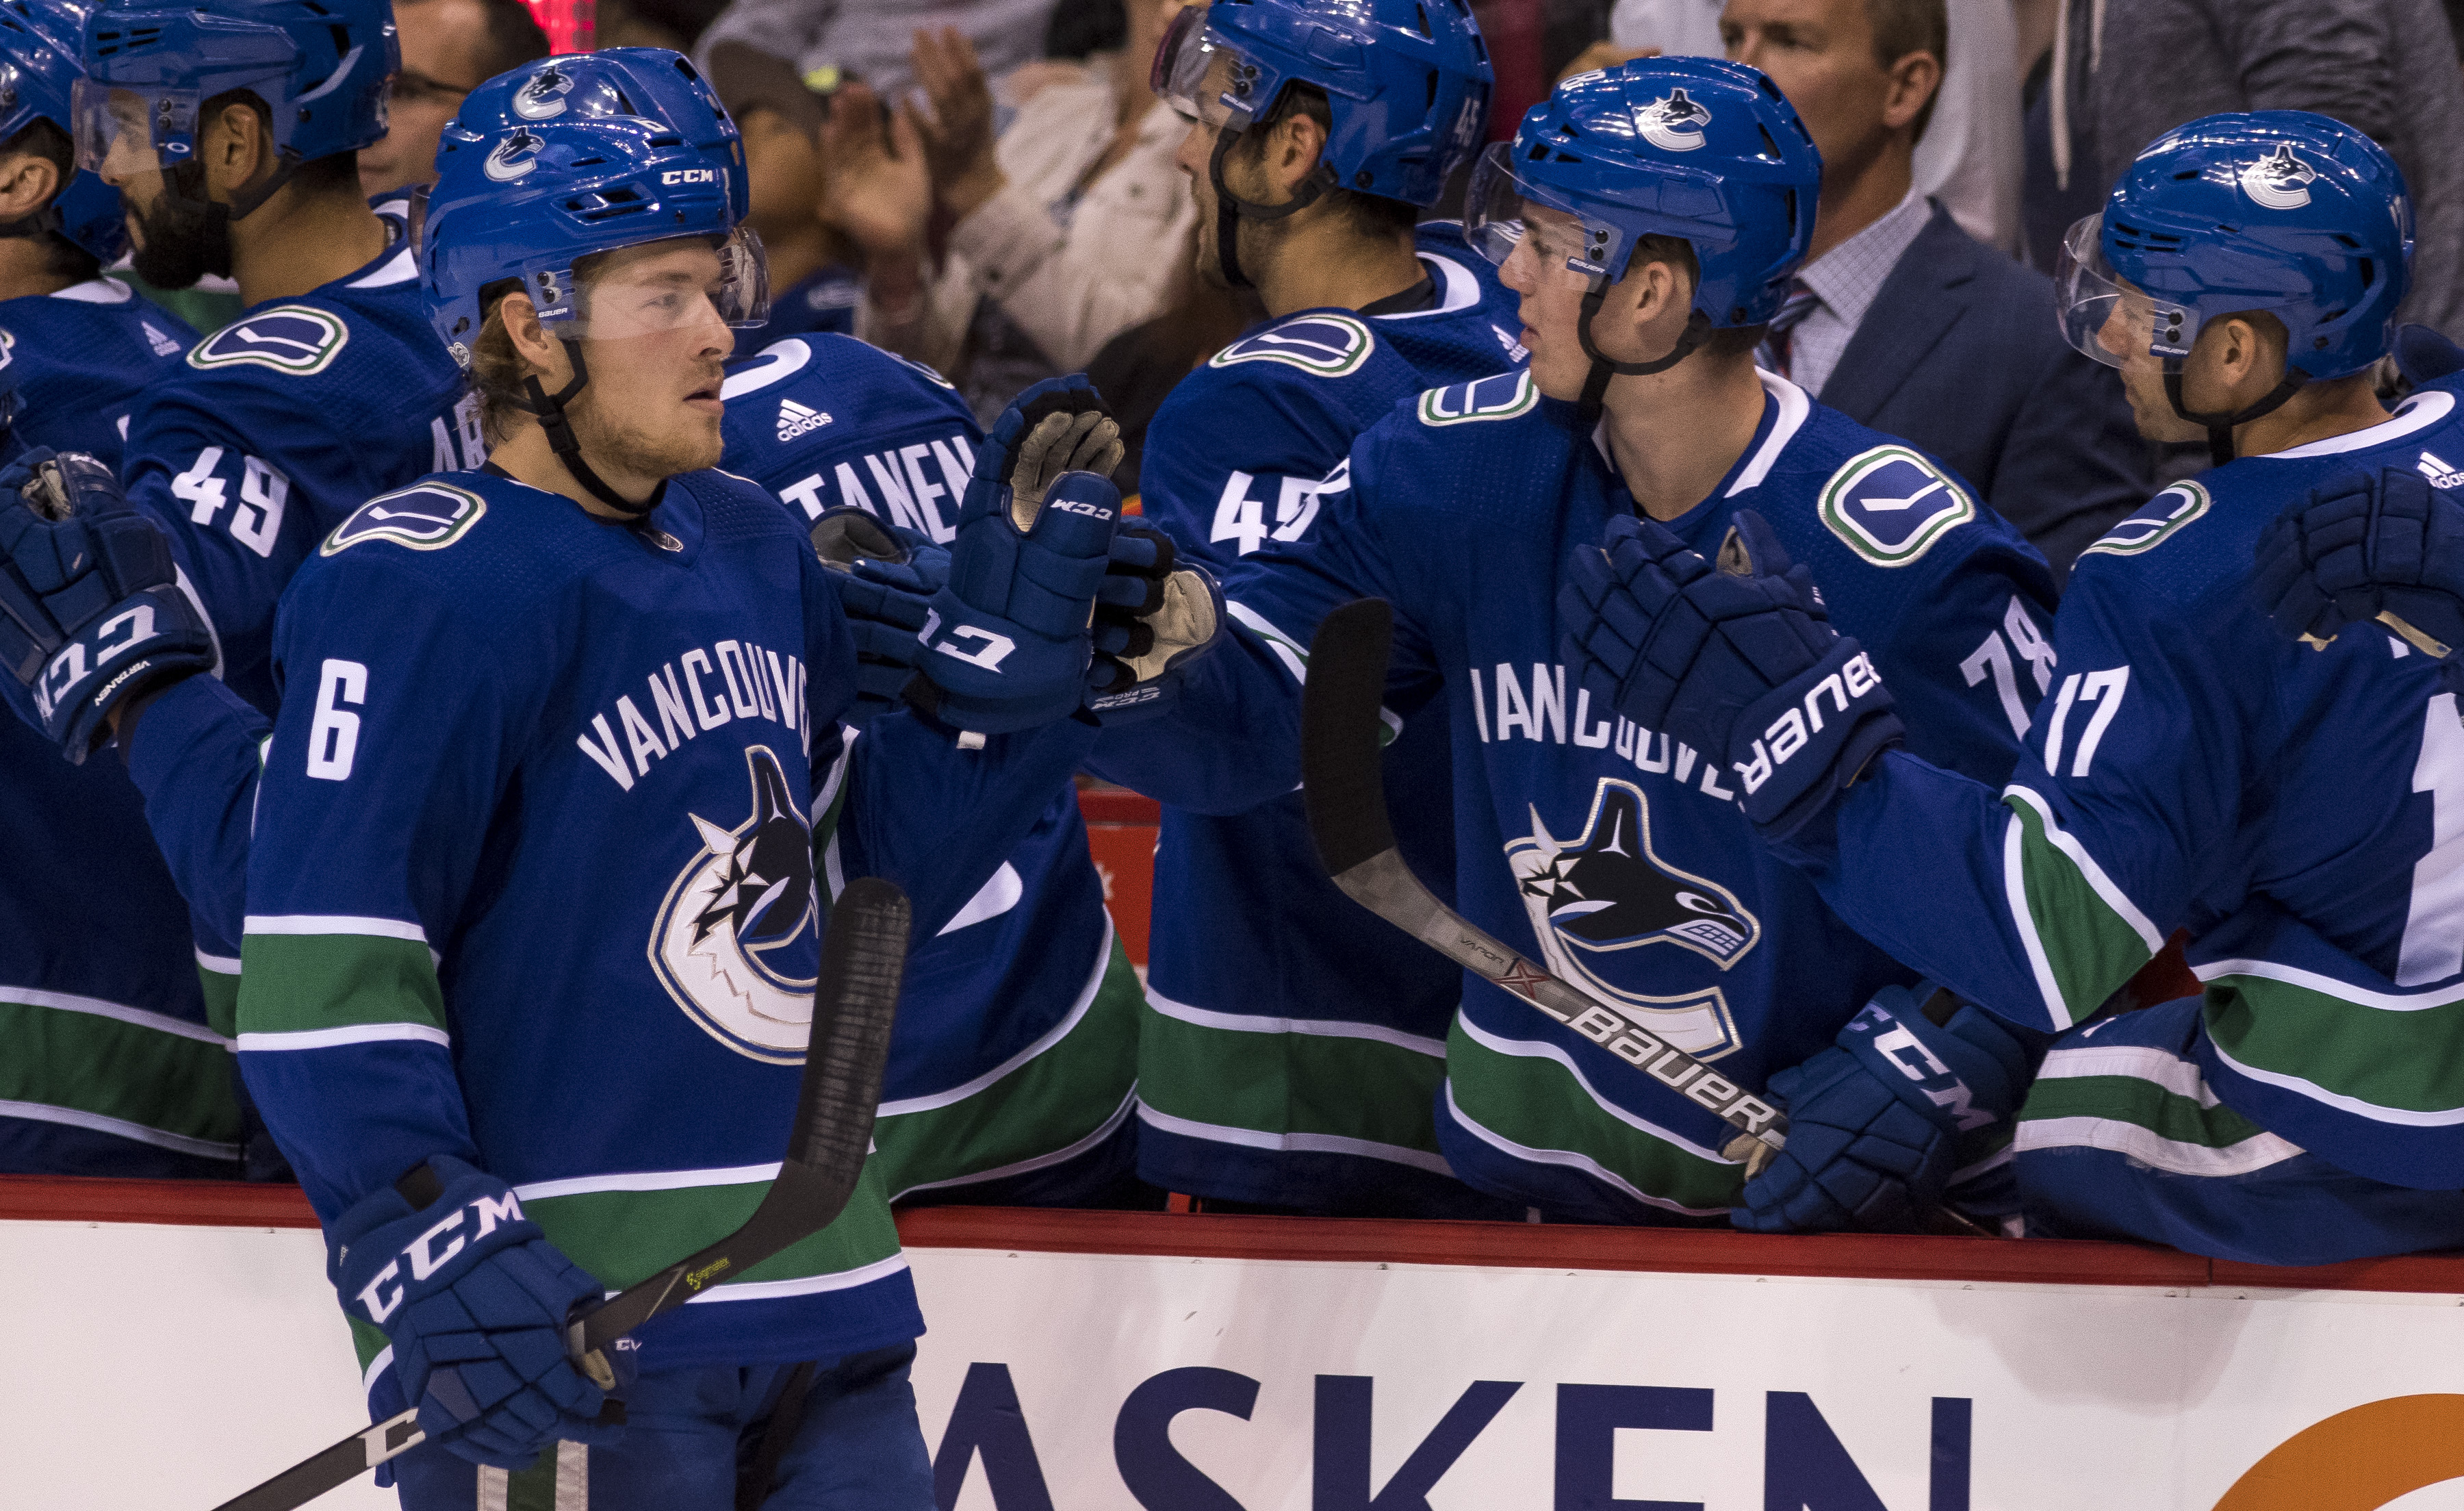 Golden Knights Vs Canucks News: Vancouver Canucks Roundtable: Rookies, Expectations, Call Ups